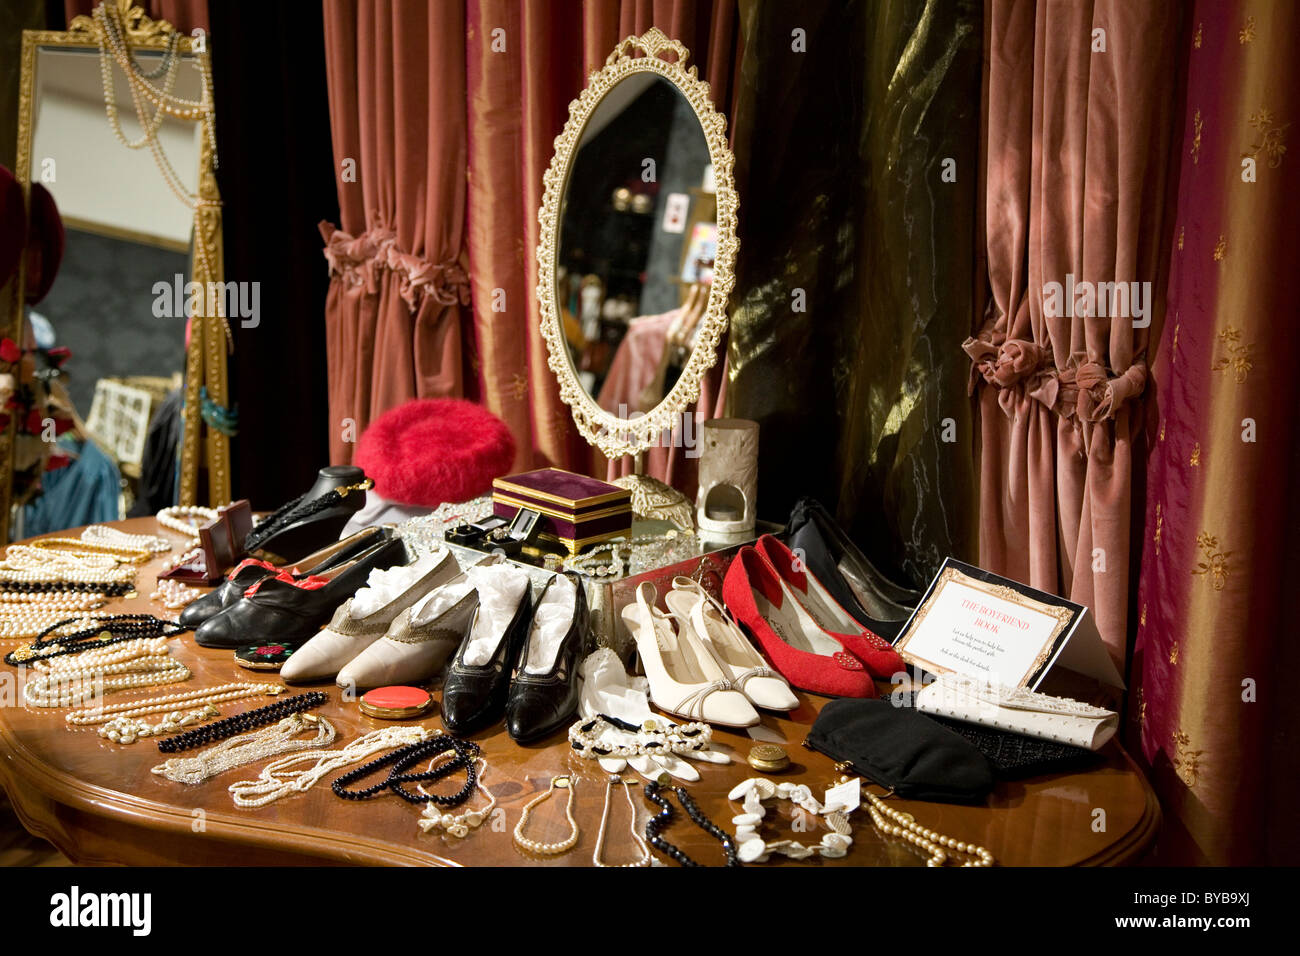 346cddeb5d6 Interior of a vintage clothing store with womens clothes and accessories